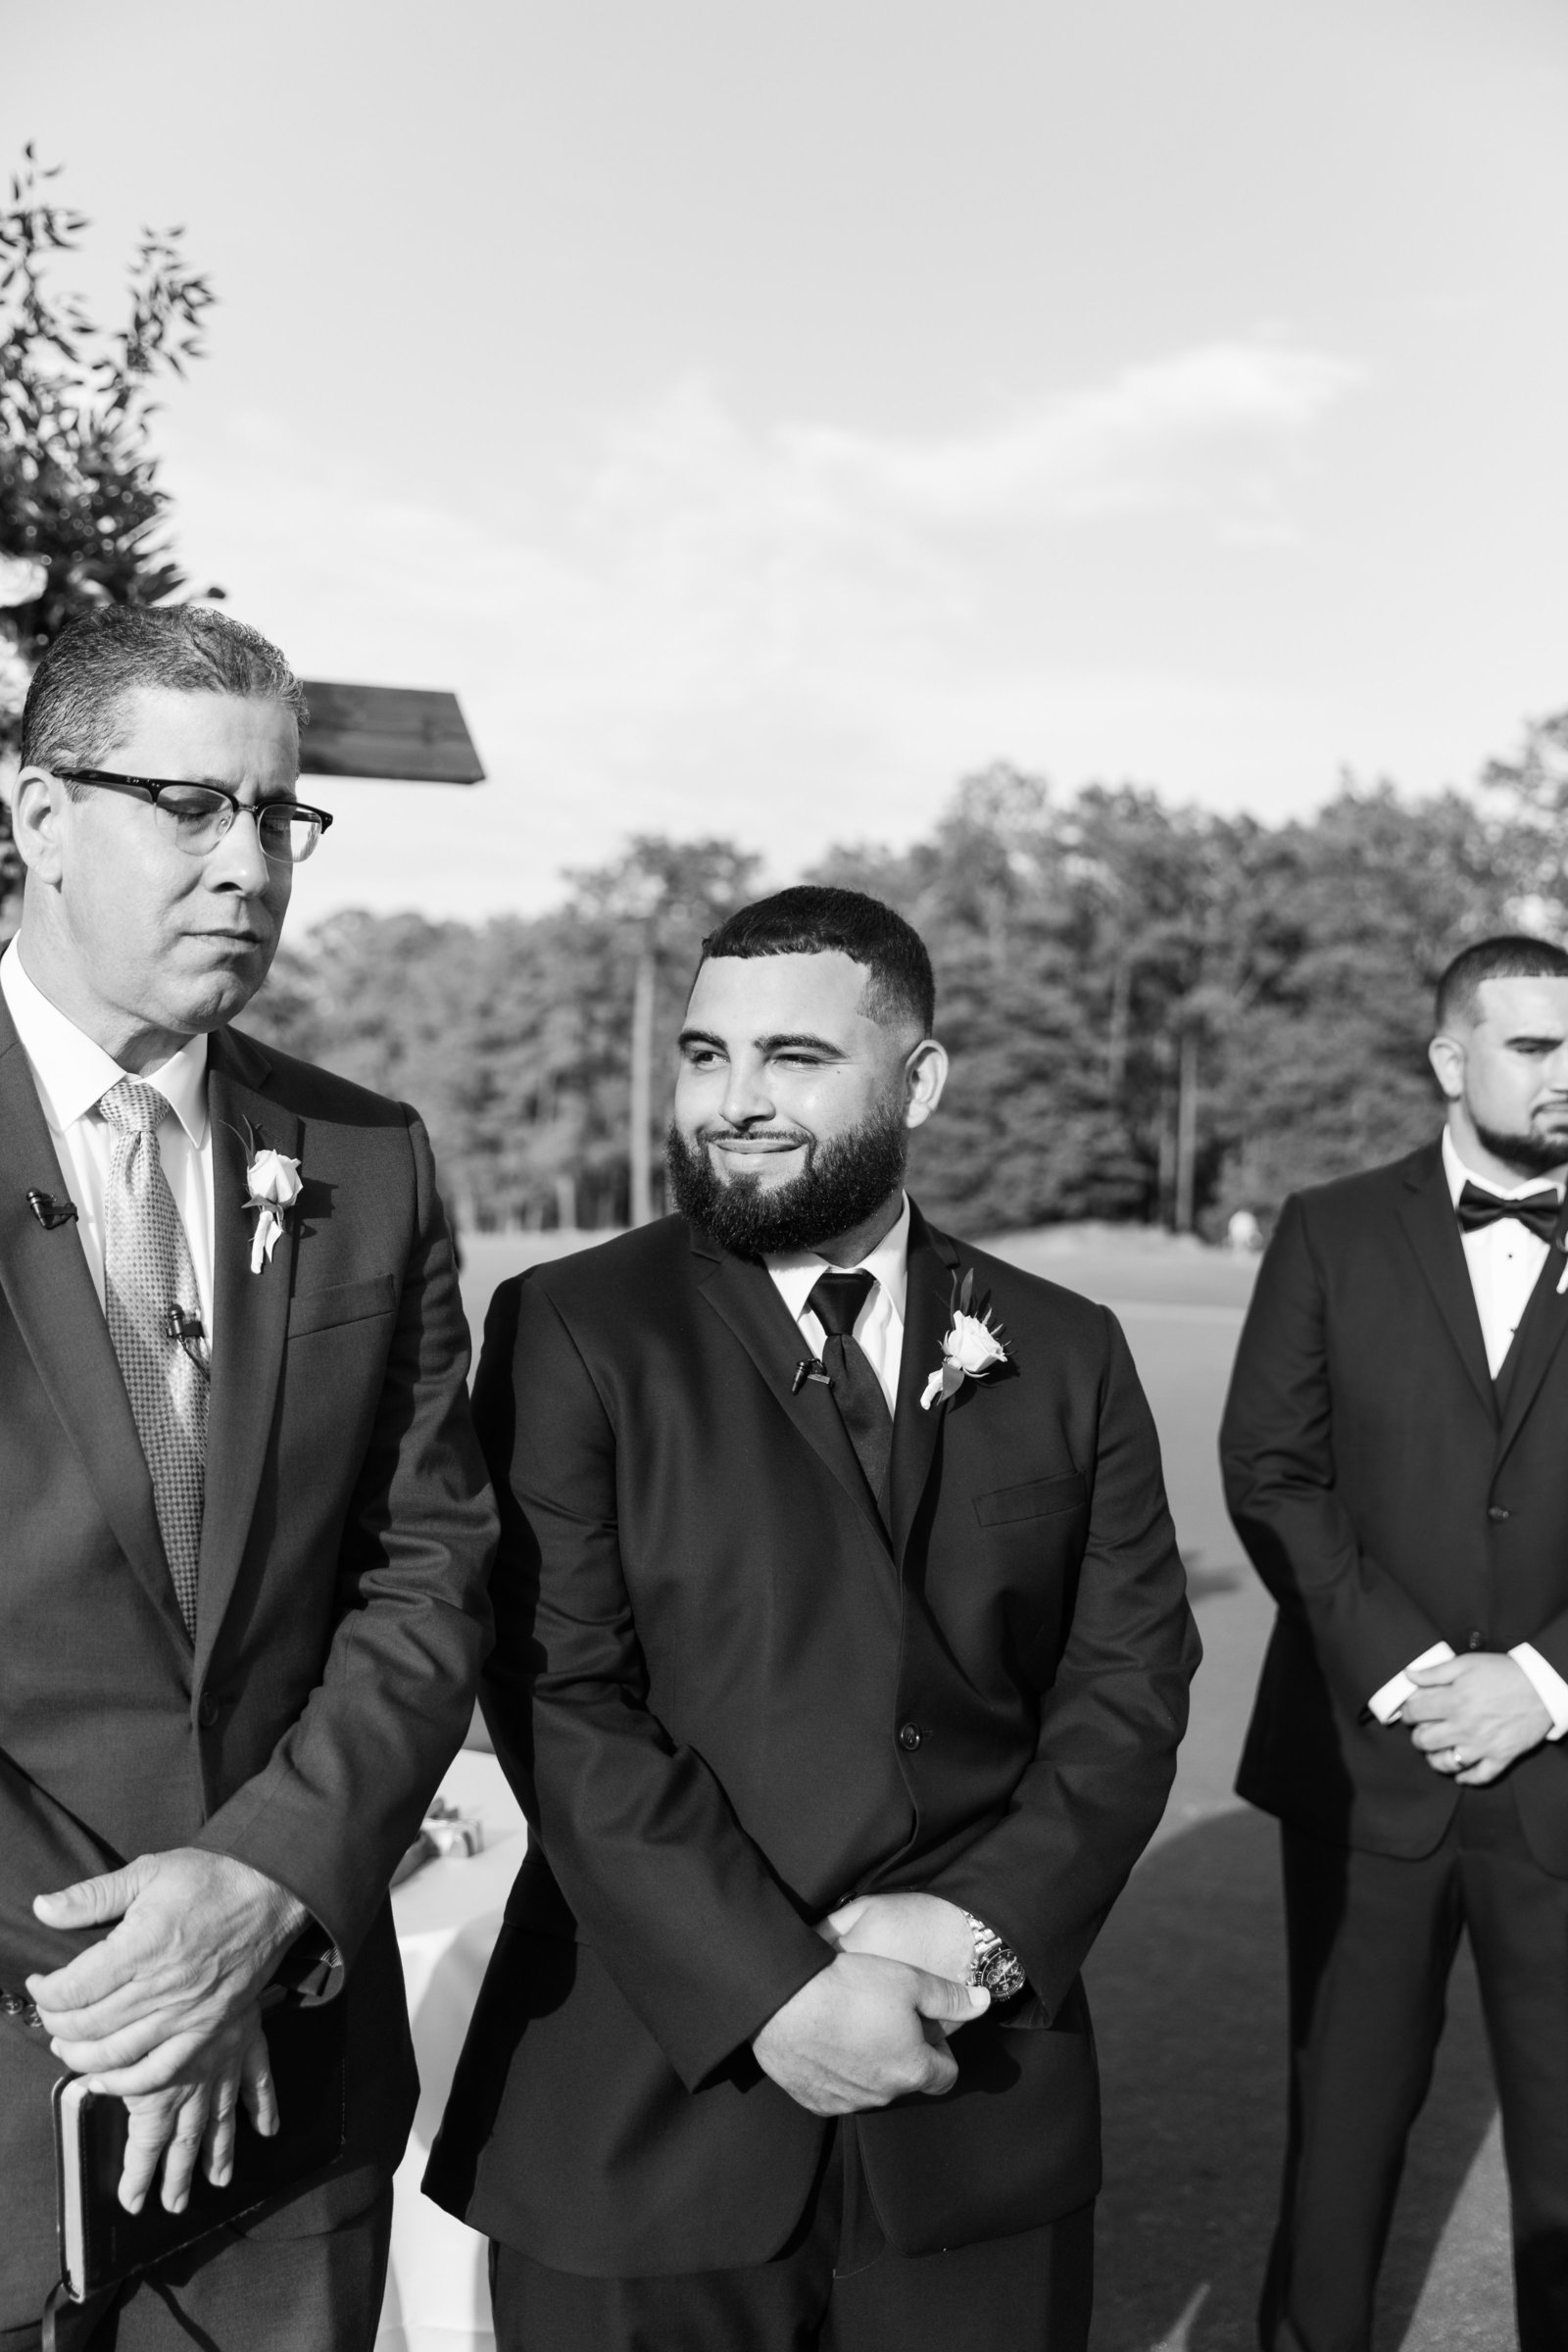 Jennifer_B_Photography-Pinehurst_Club-Pinehurst_NC-Wedding_Day-Caleb___Miranda-JB_Favs-2019-0154